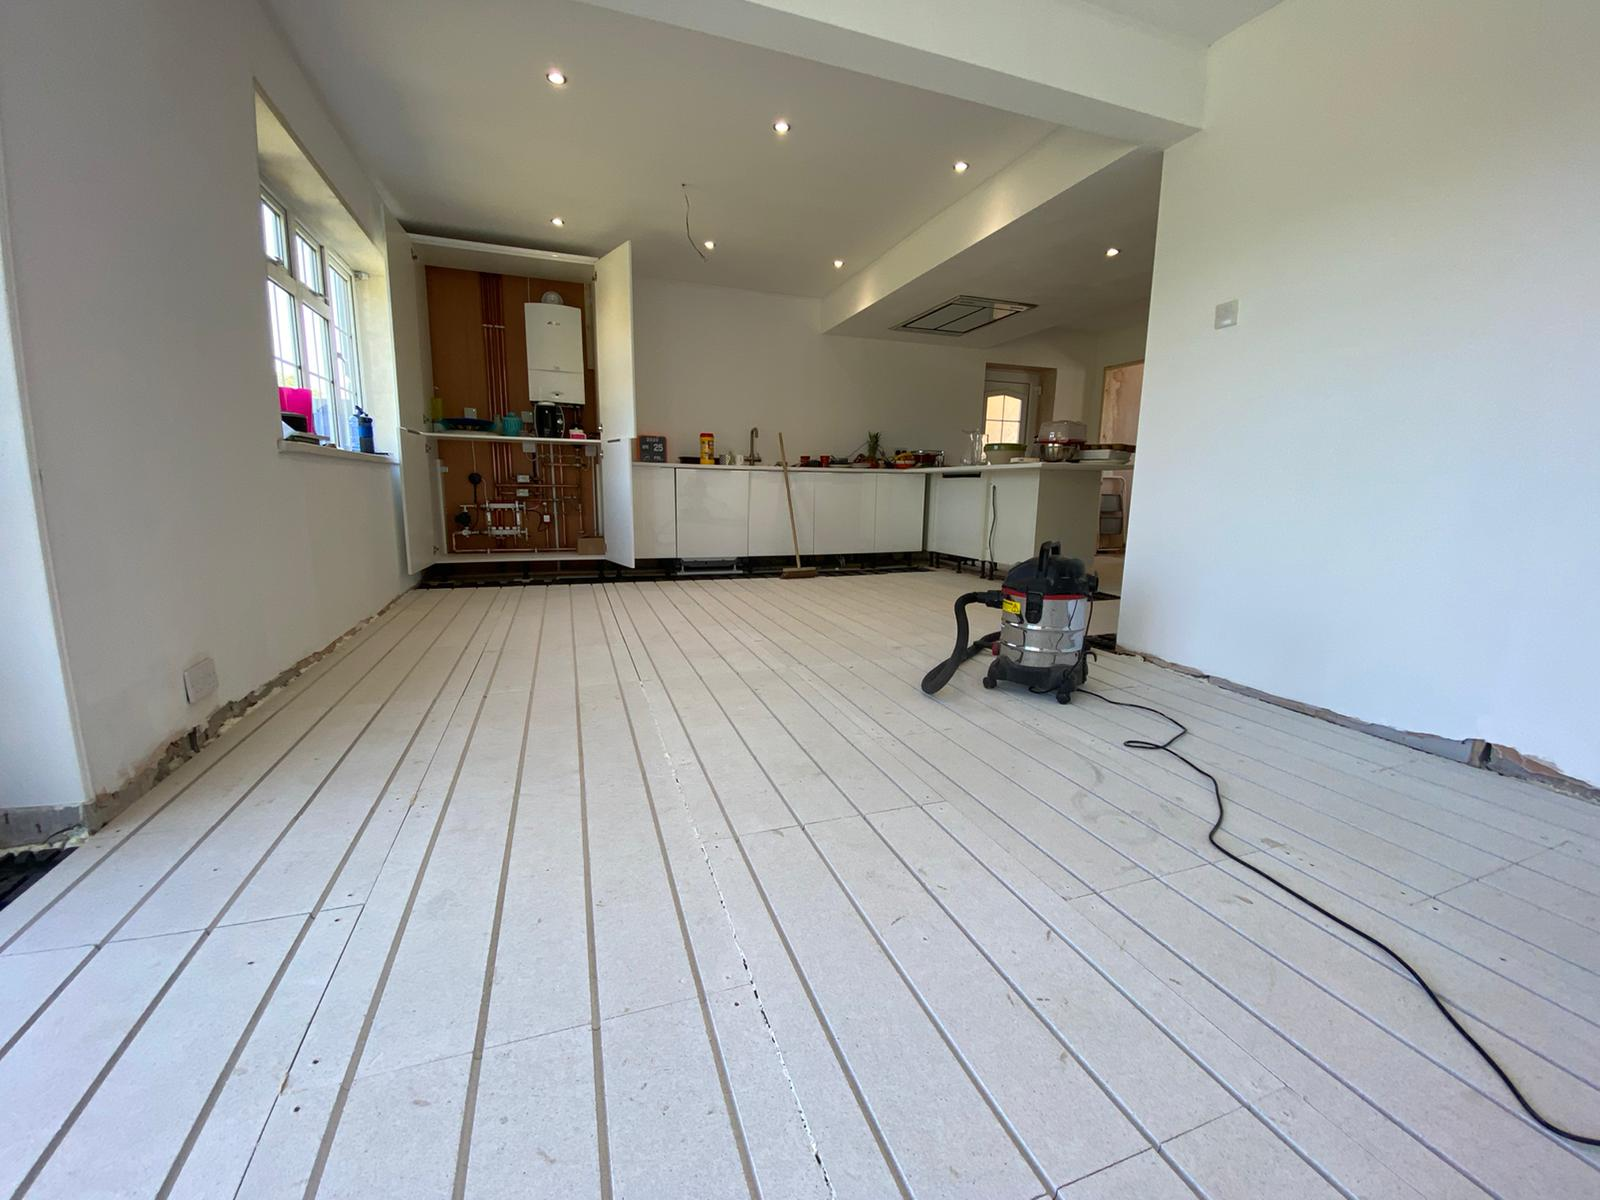 Solfex retro-fit underfloor heating and boiler installation by Parkstone Yorkshire